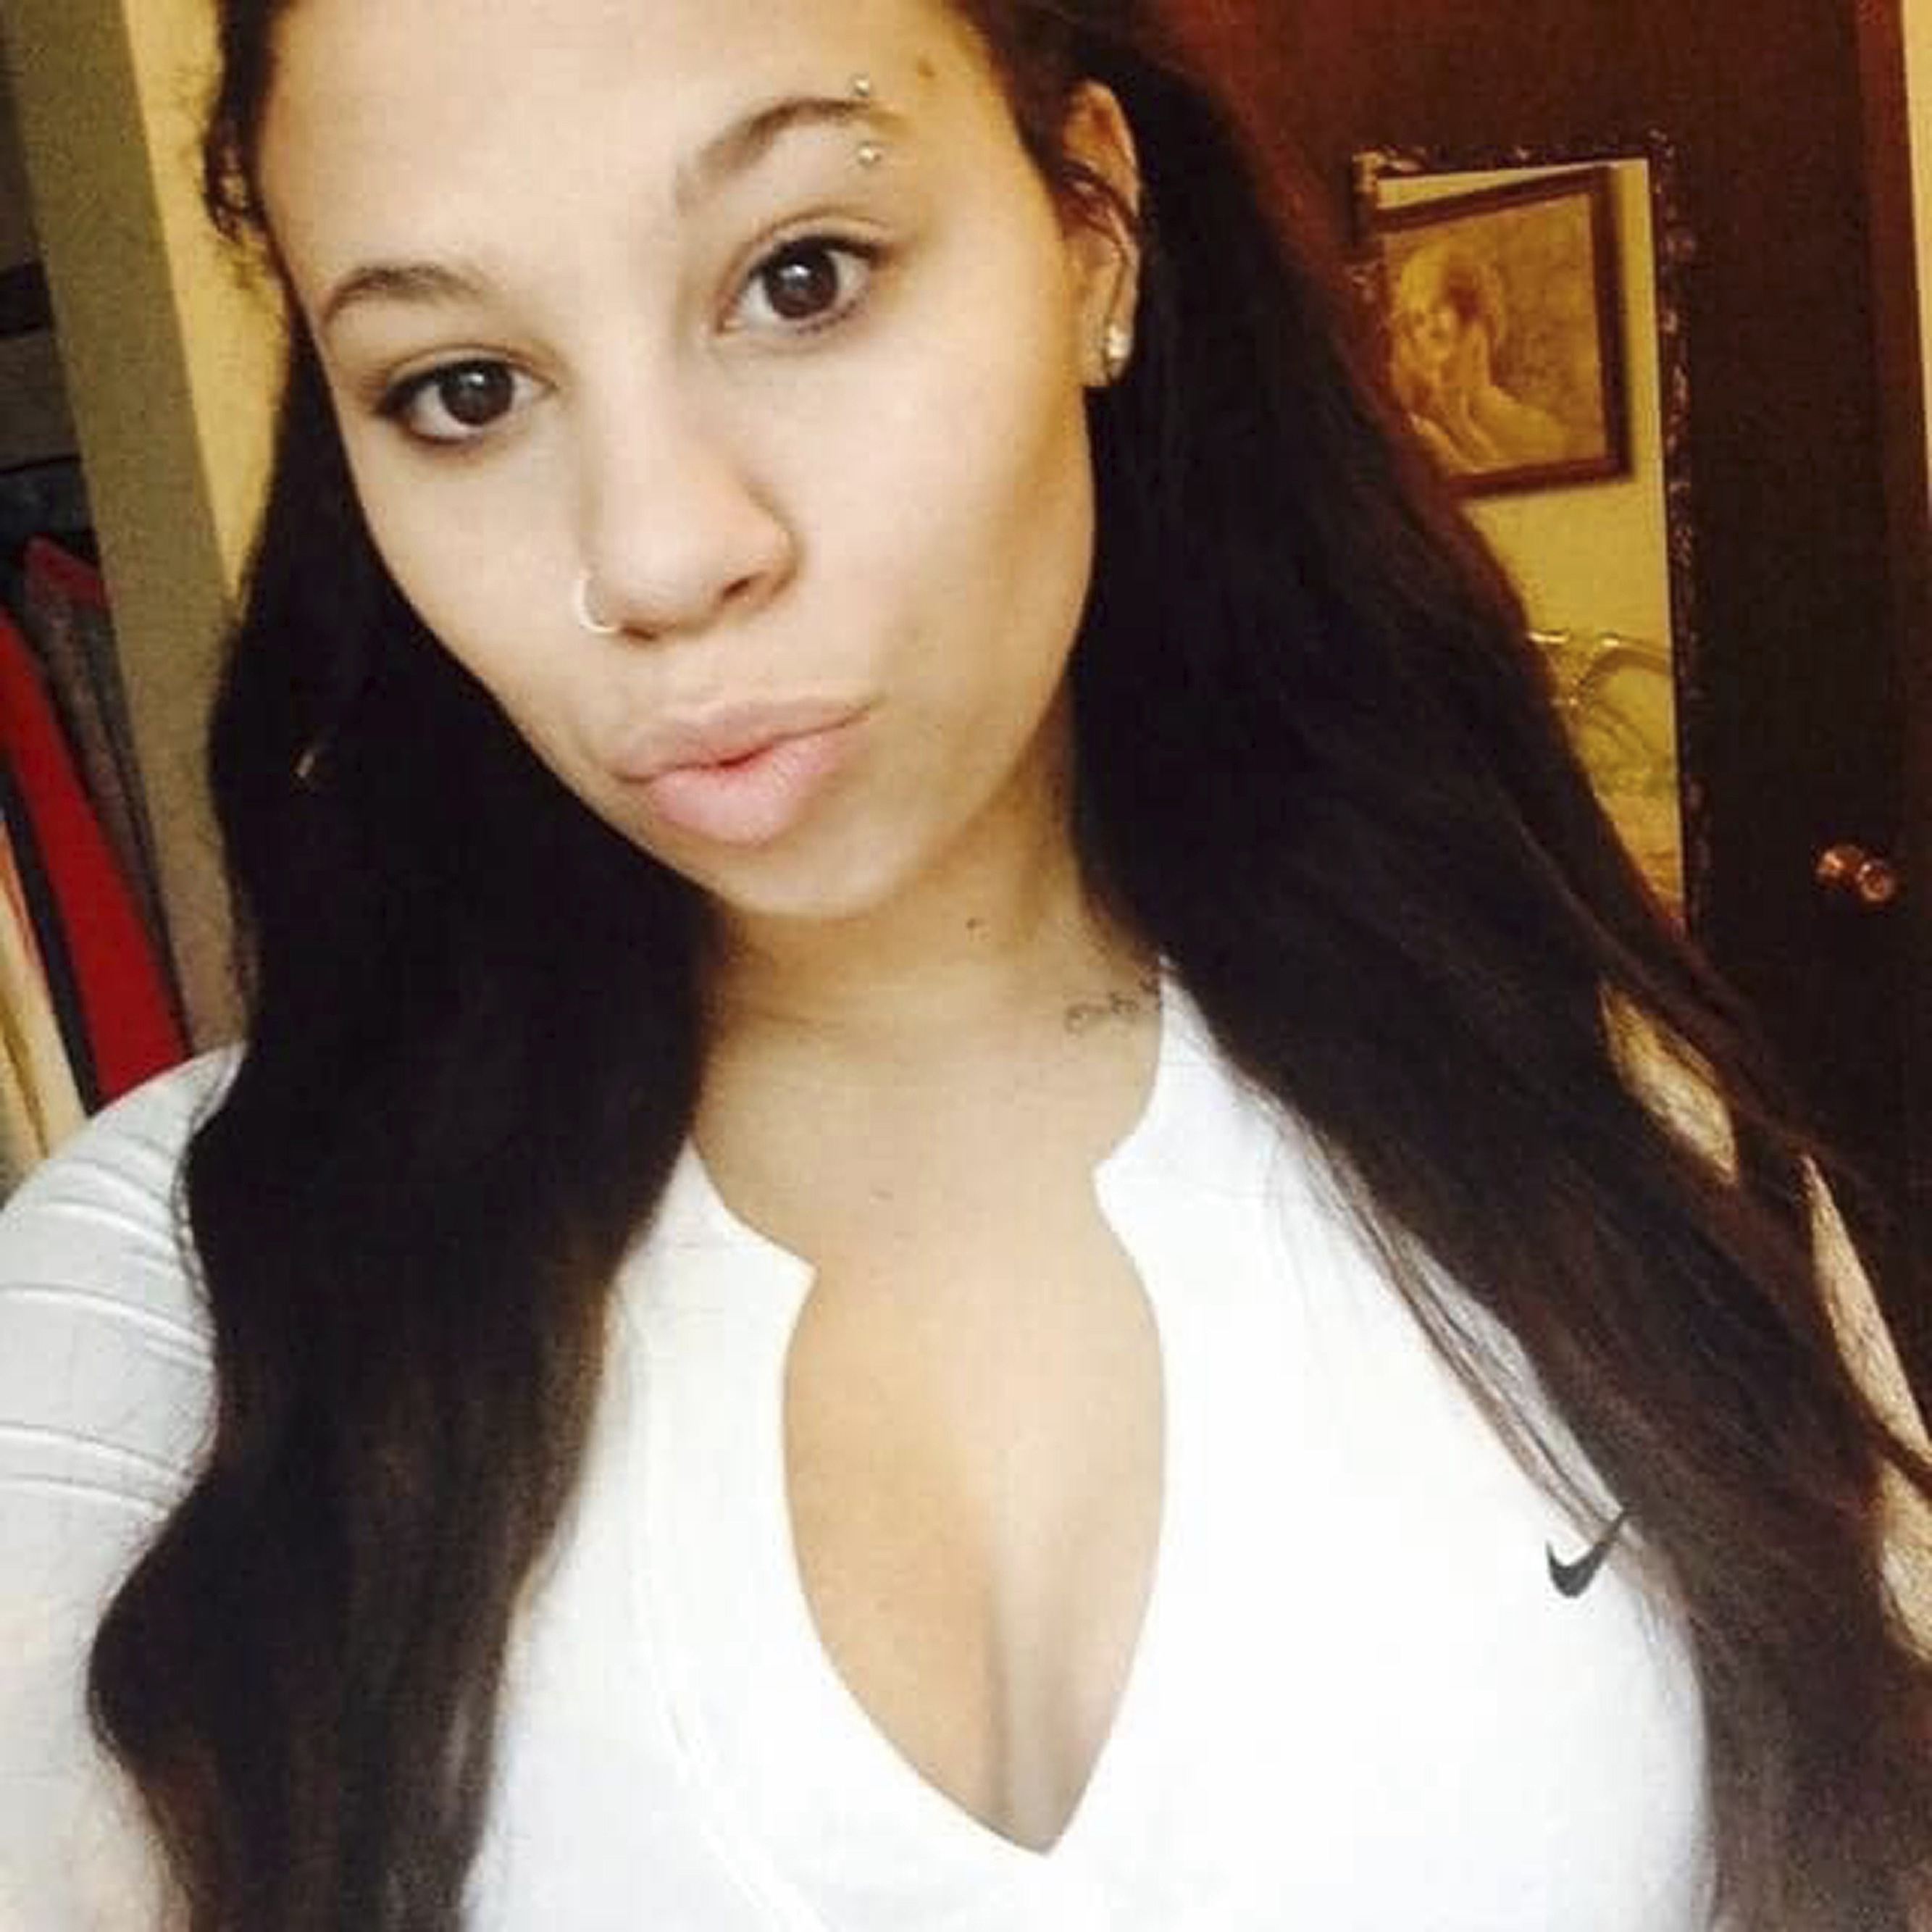 Italia Marie Kelly, 22, of Davenport, Iowa. Kelly, who also went by the last name Impinto, was shot and killed outside a Walmart early Monday, June 1, 2020, while leaving a protest against police brutality.